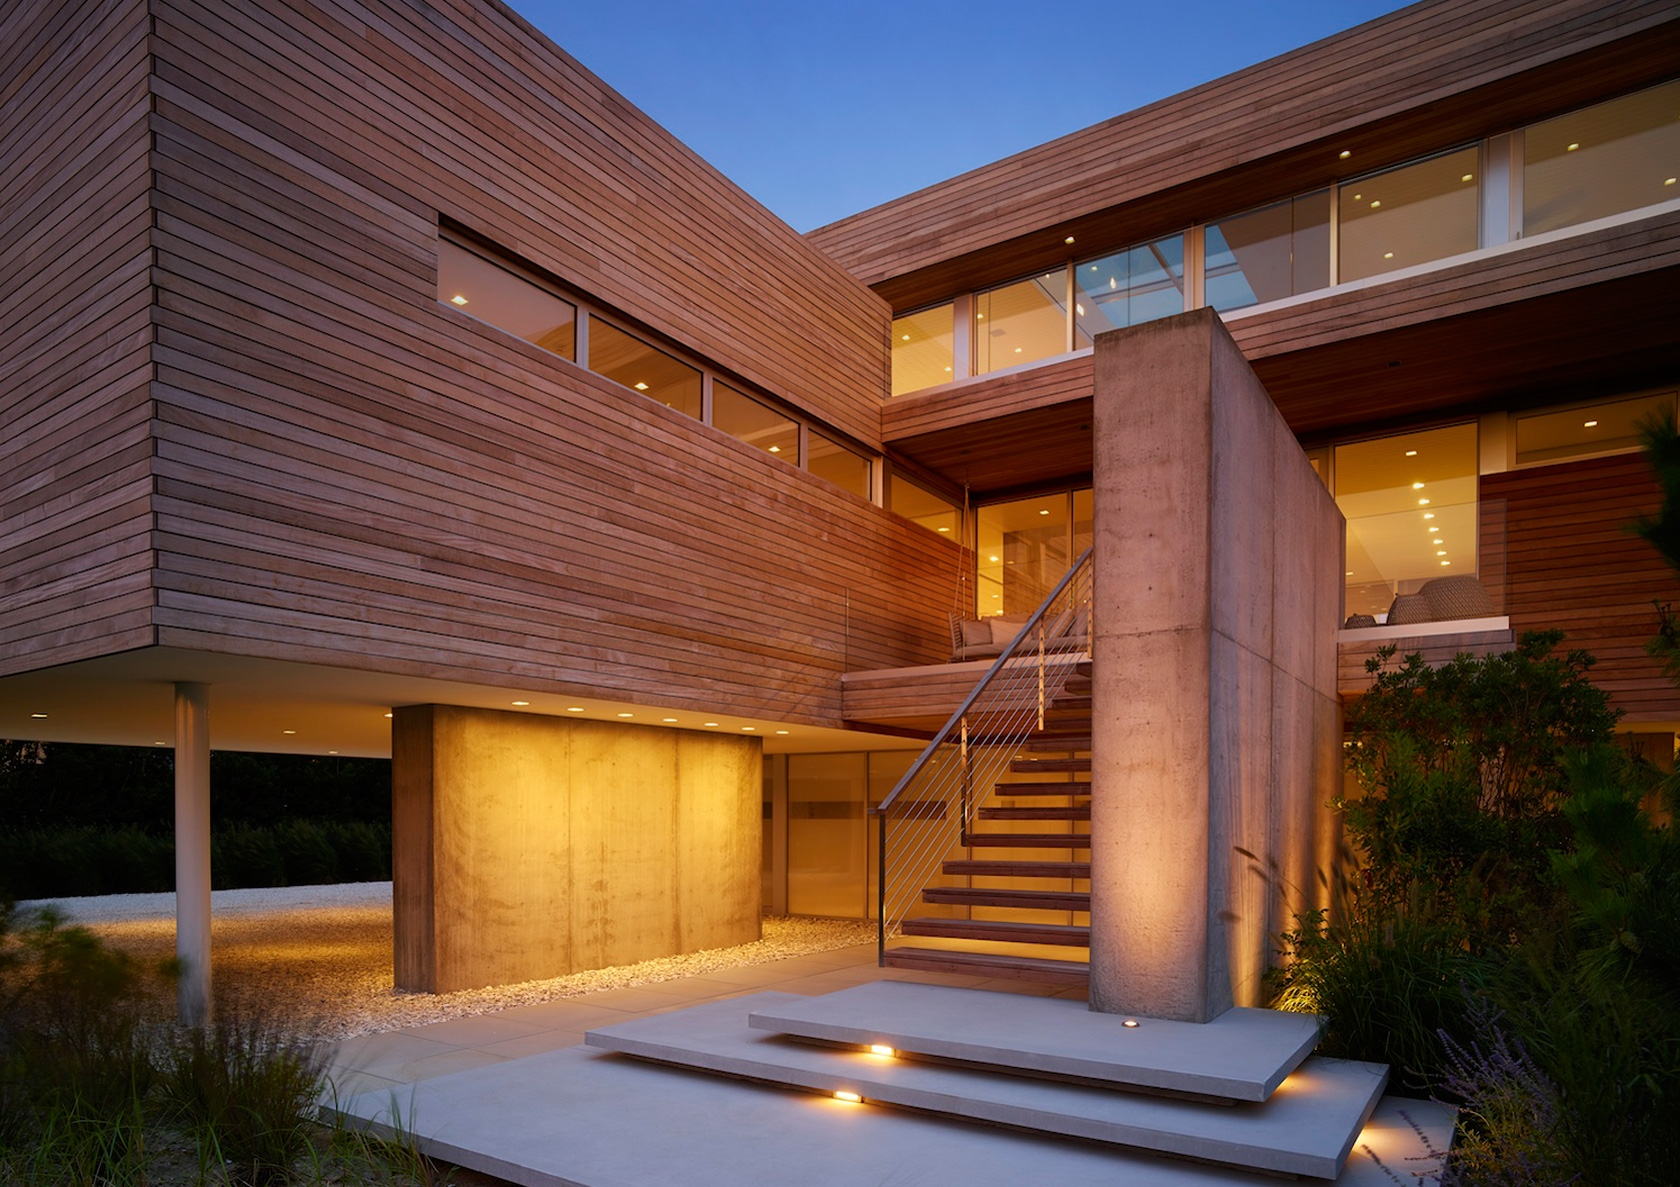 Beautiful Ocean Deck House By Slr Architects